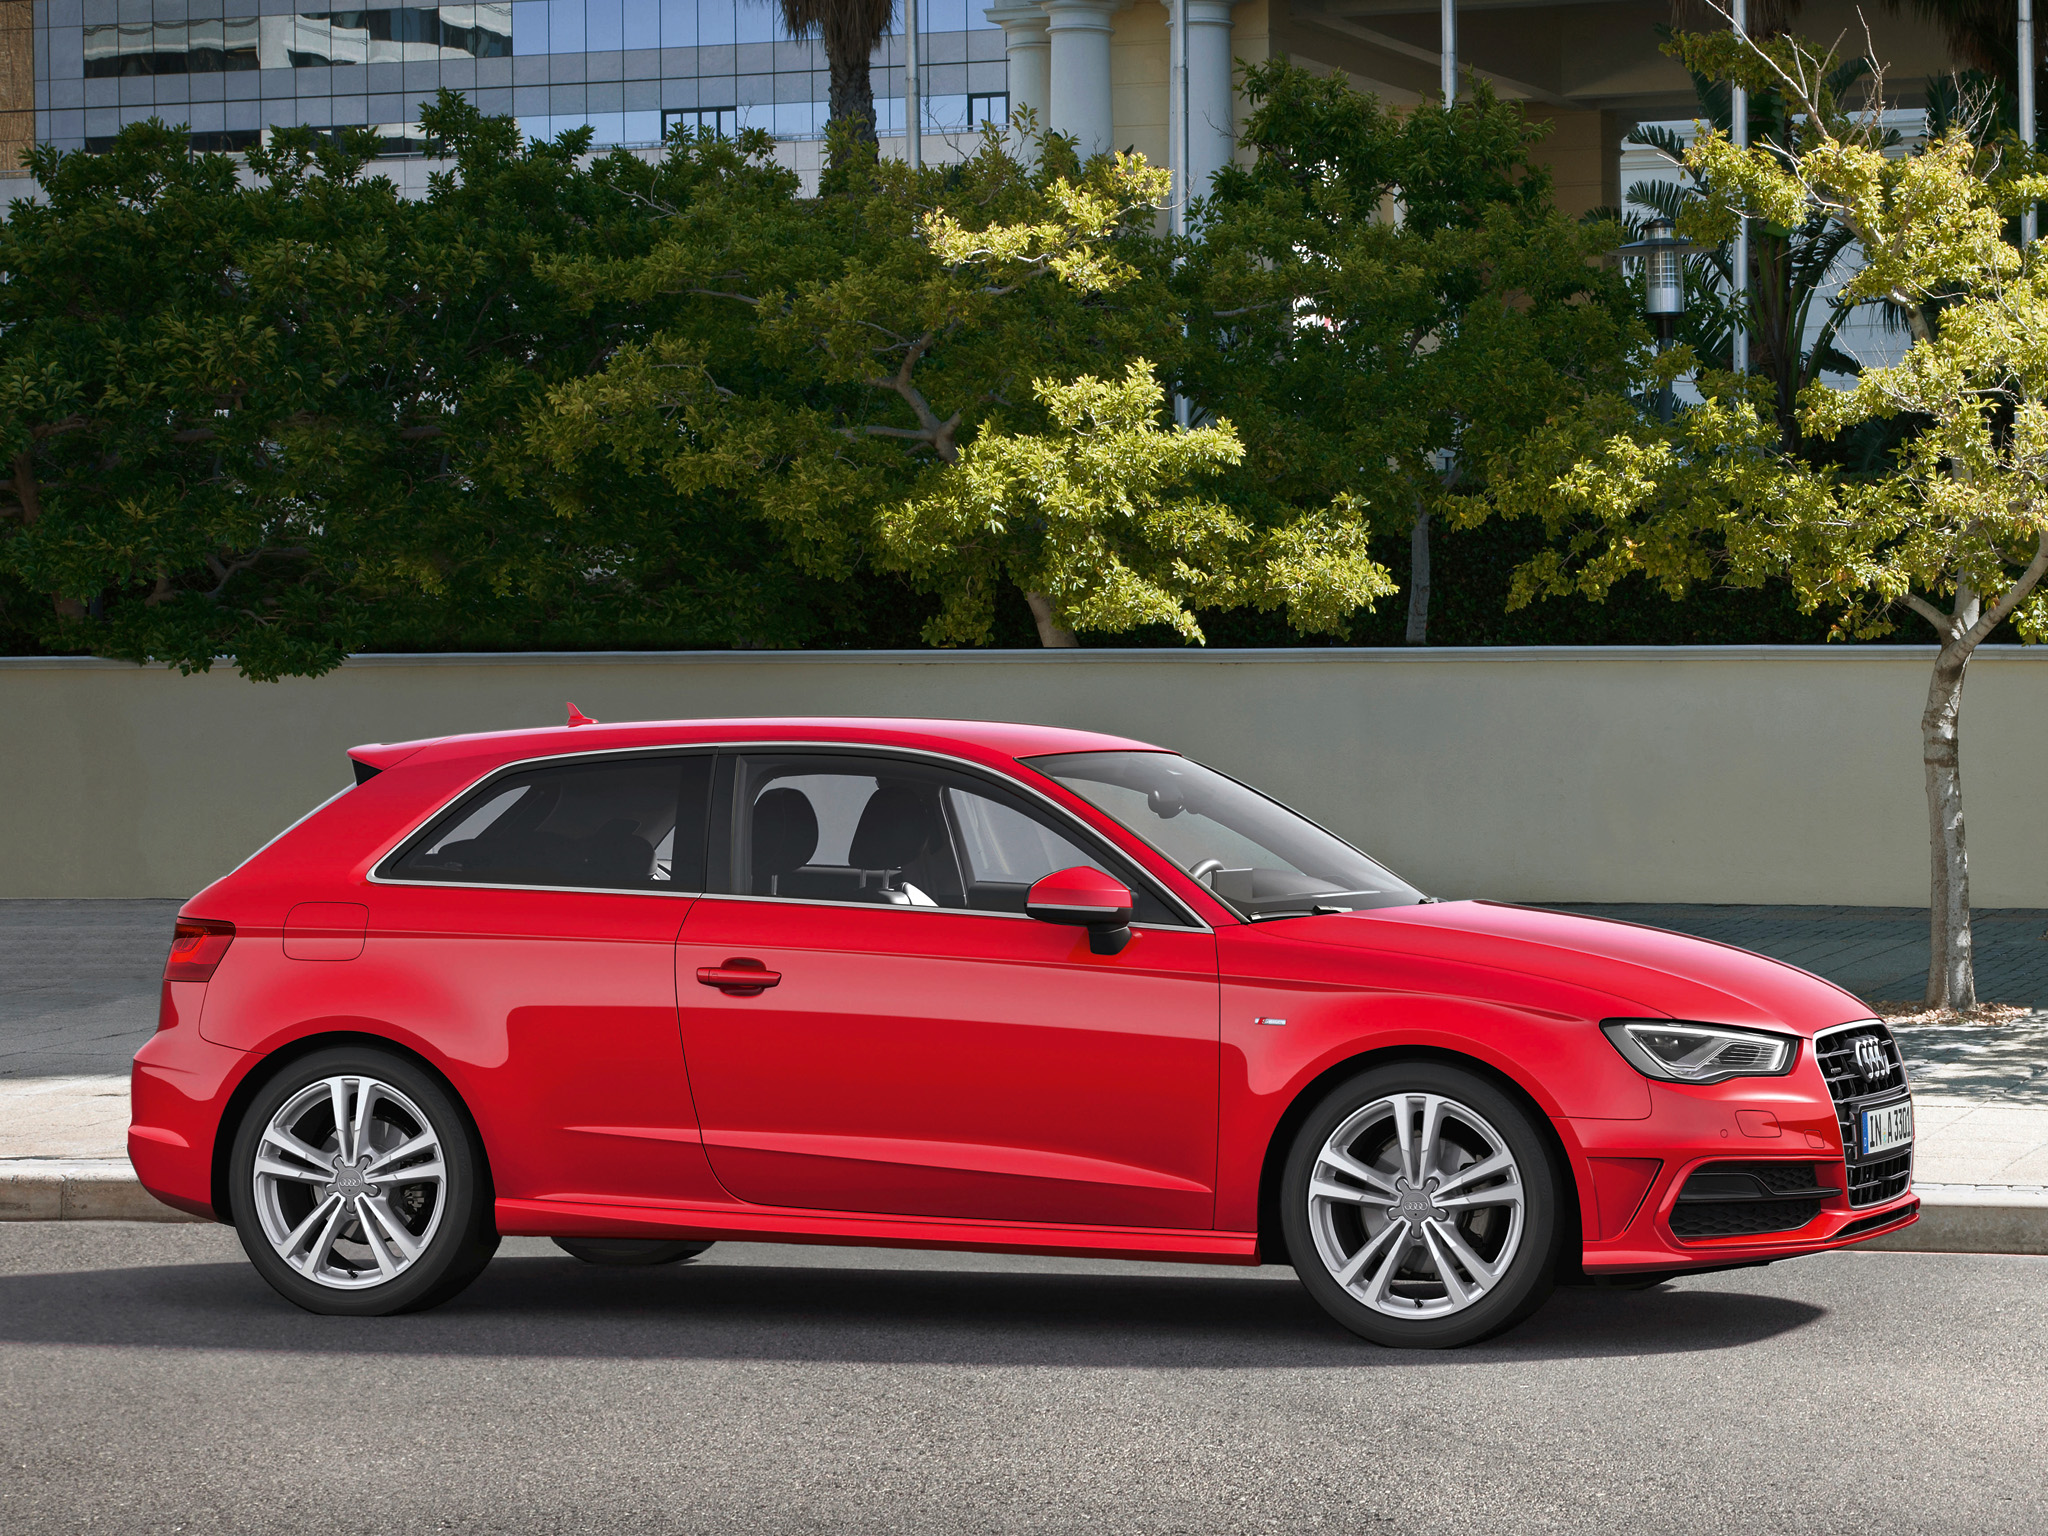 audi a3 car technical data car specifications vehicle. Black Bedroom Furniture Sets. Home Design Ideas